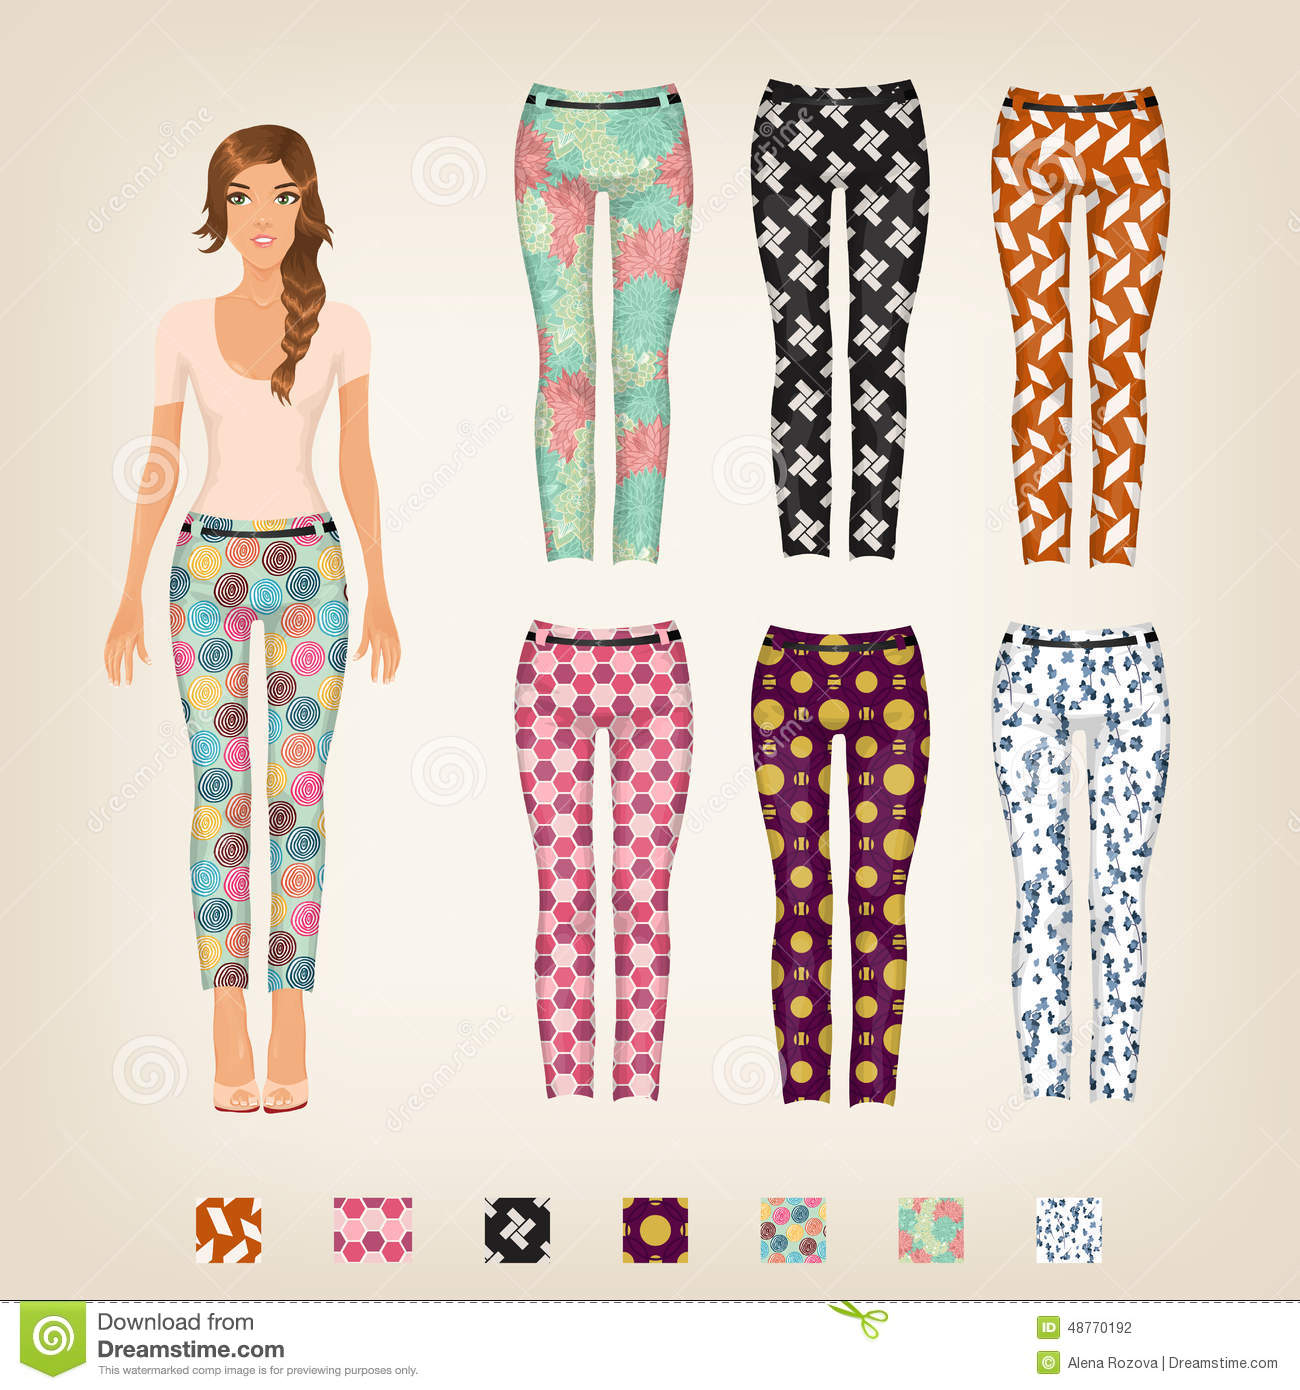 Dress Up Paper Doll With An Assortment Of Pants